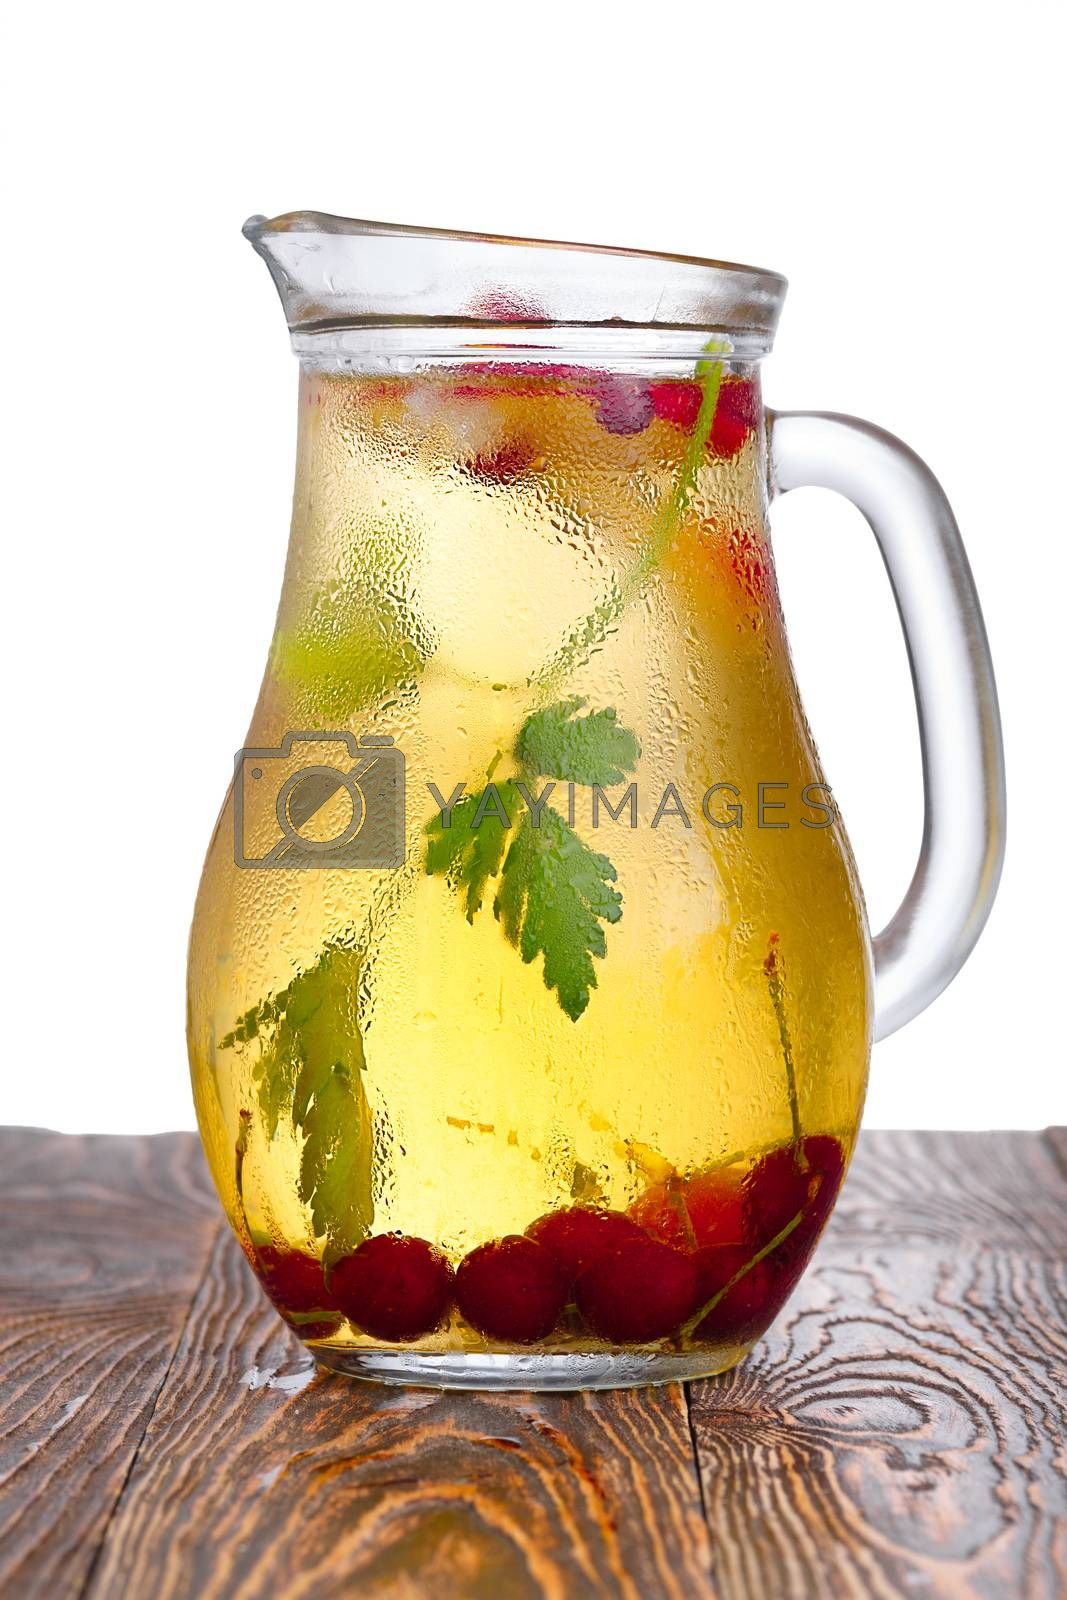 Royalty free image of Spritzer (schorle) soft drink pitcher by maxsol